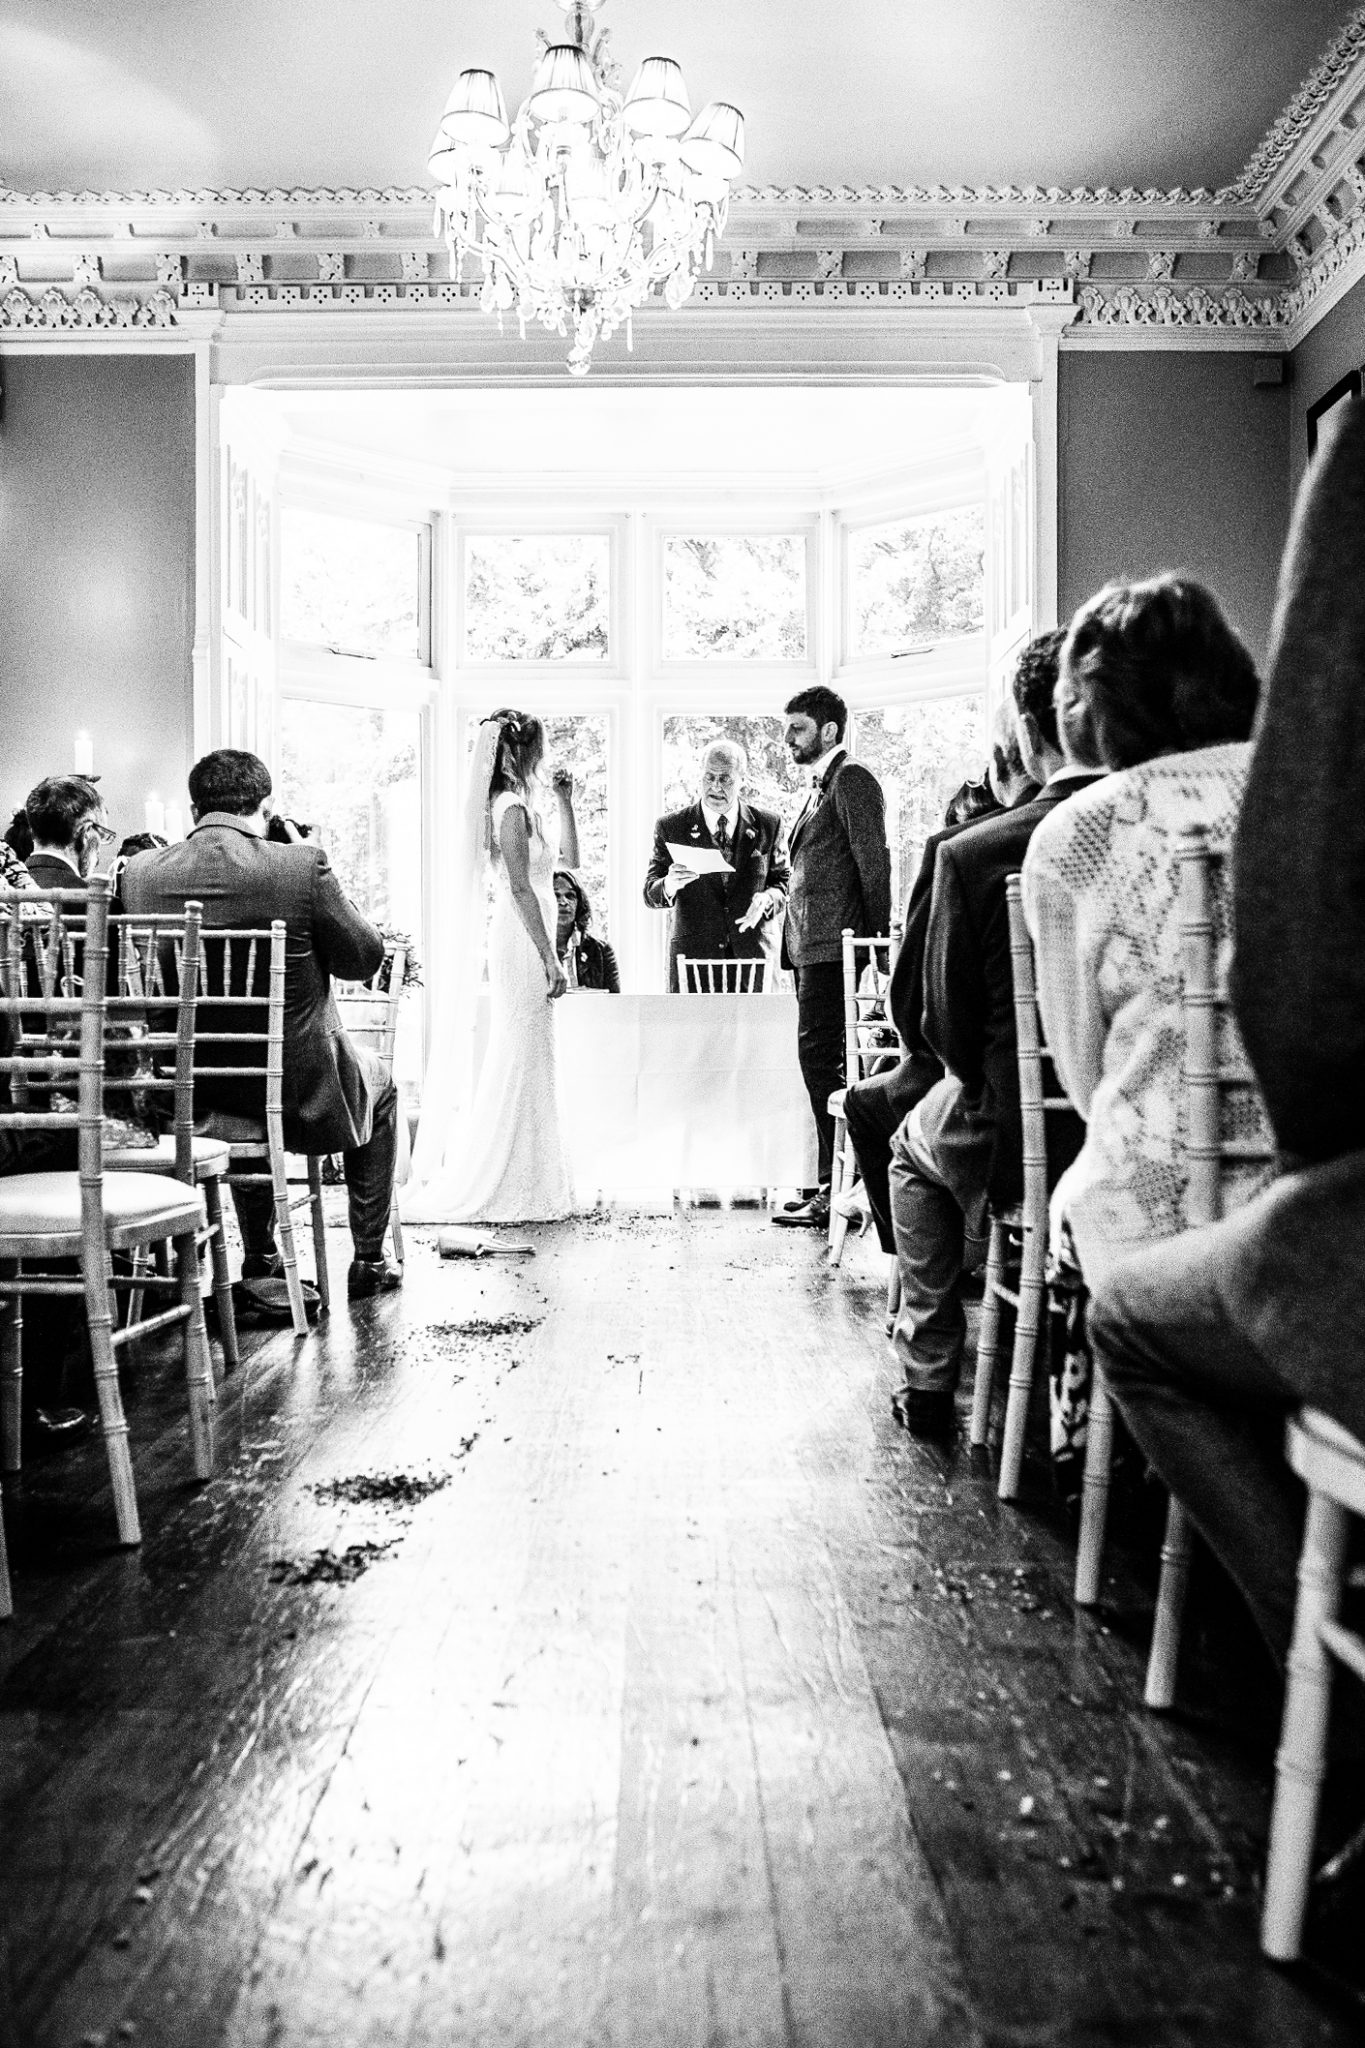 the-wedding-ceremony-in-manchester